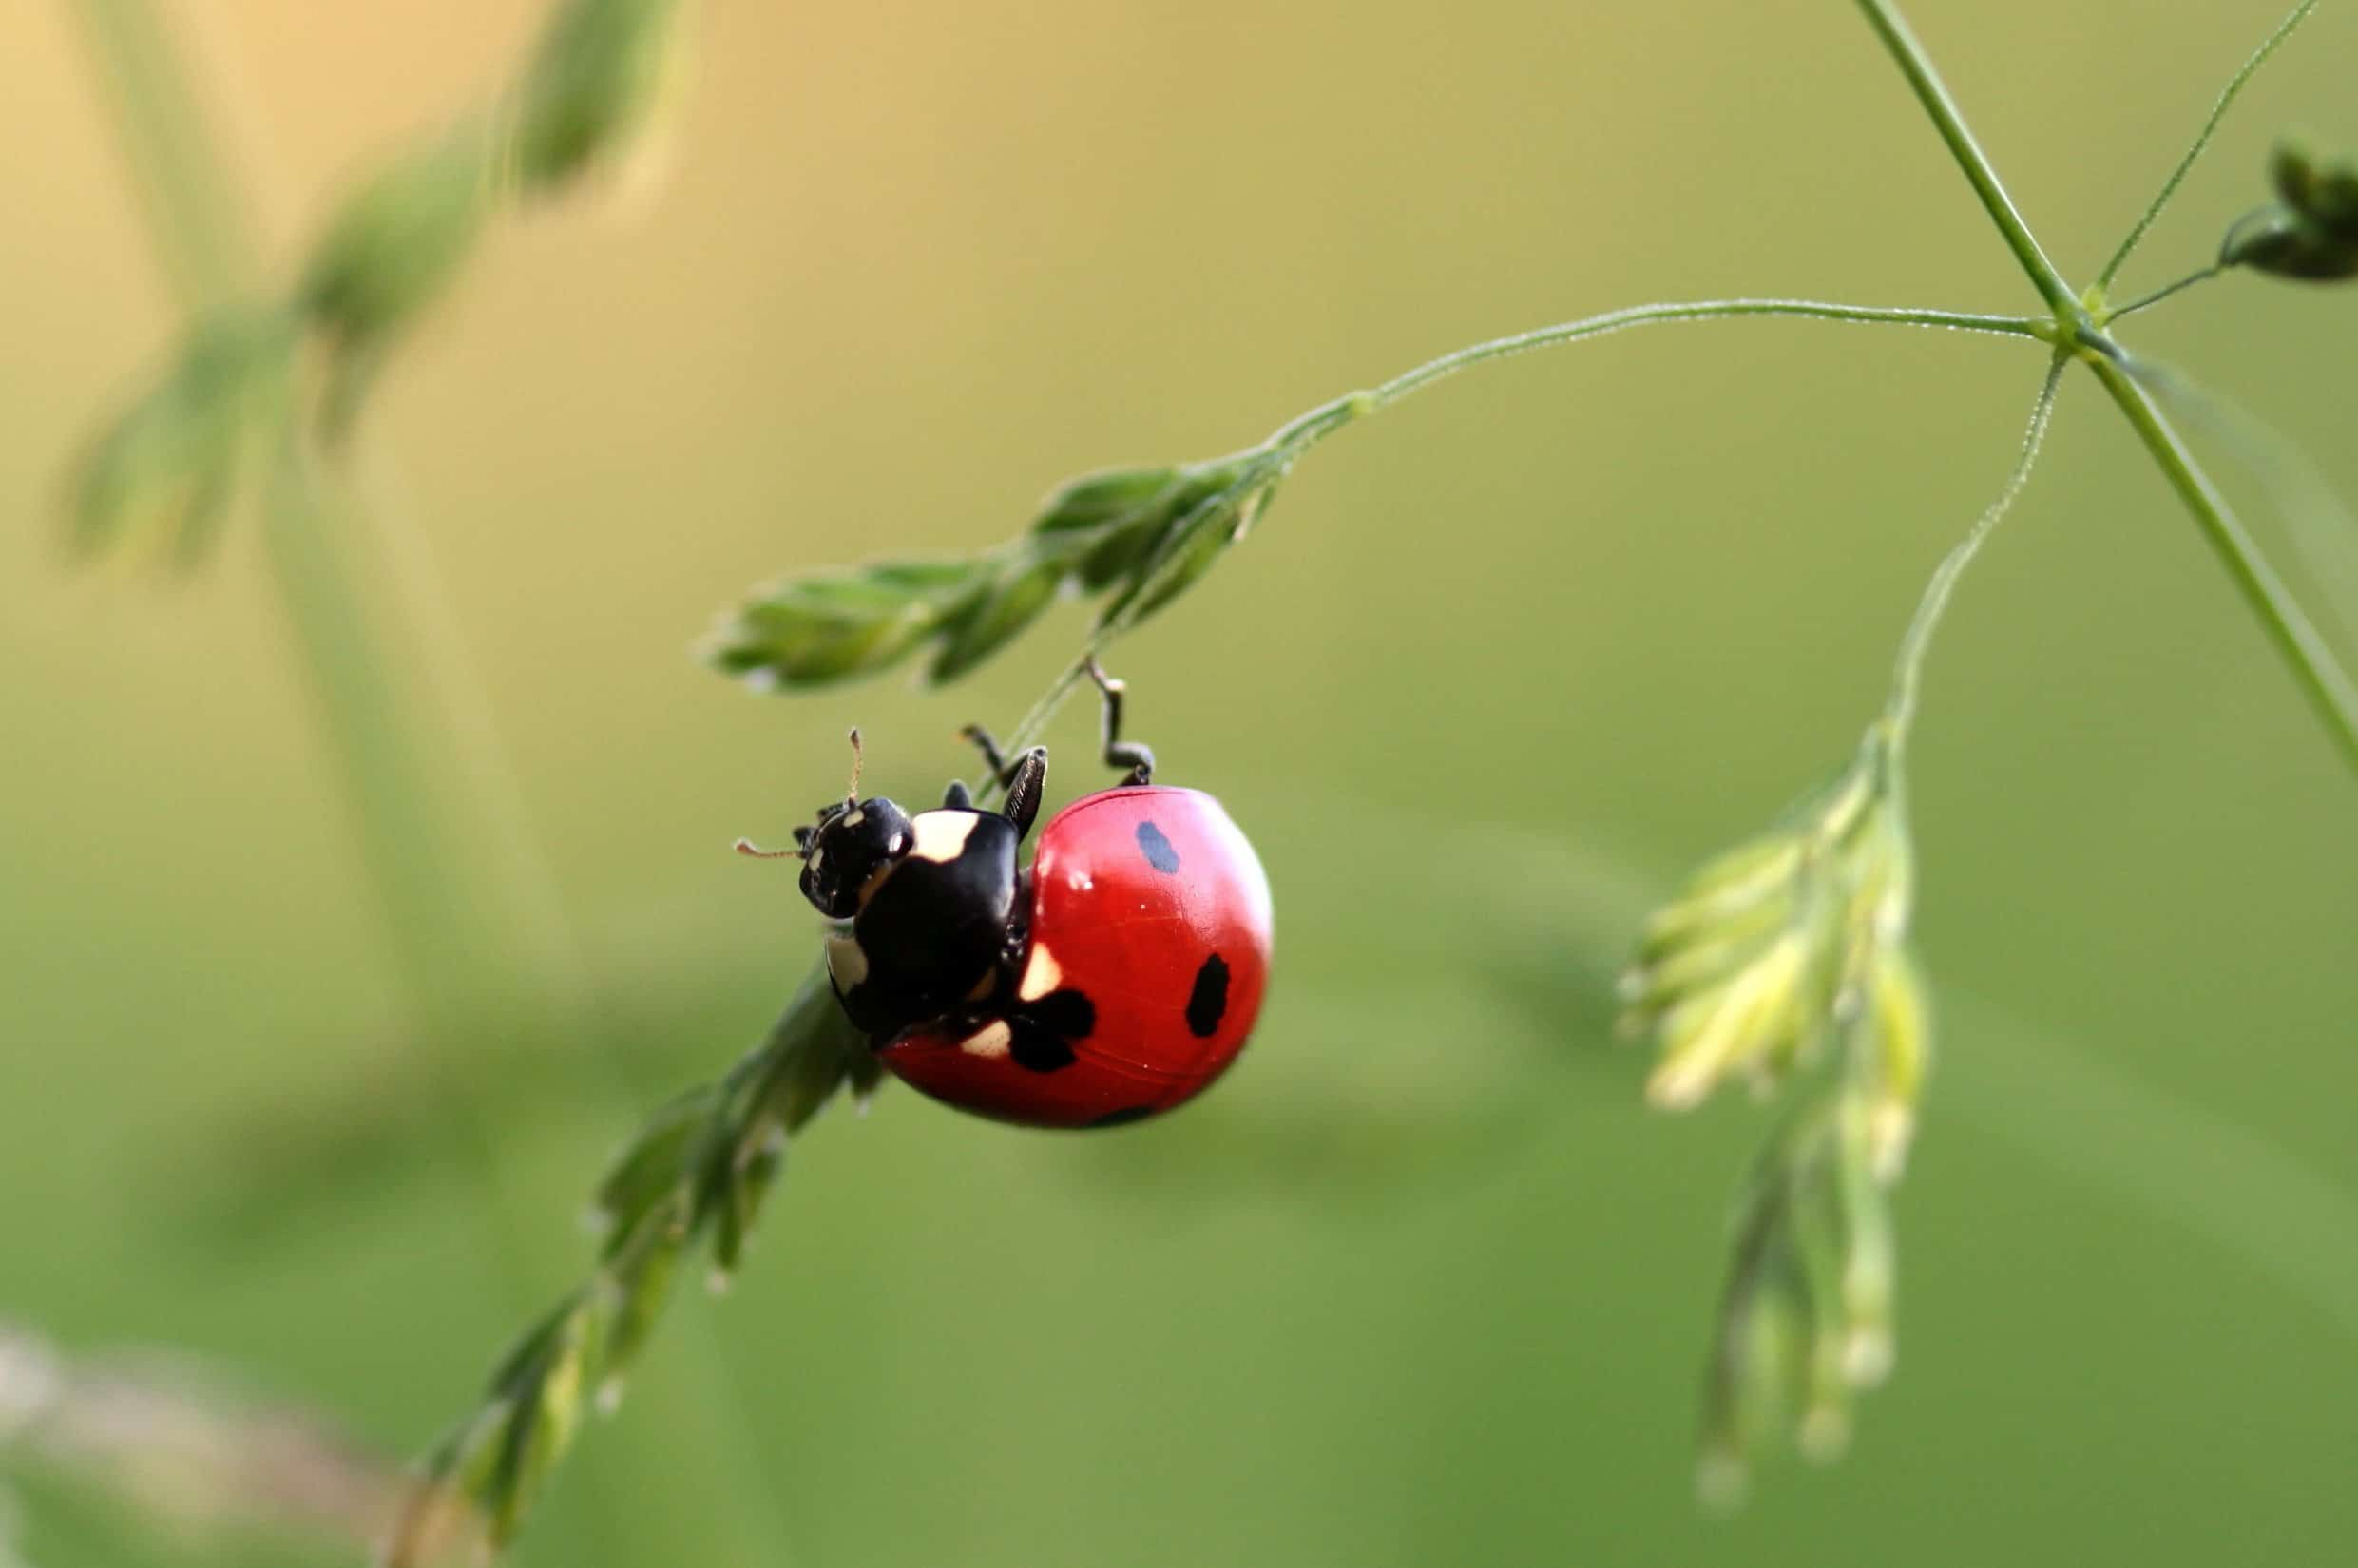 Free Picture Insect Beetle Nature Ladybug Green Leaf